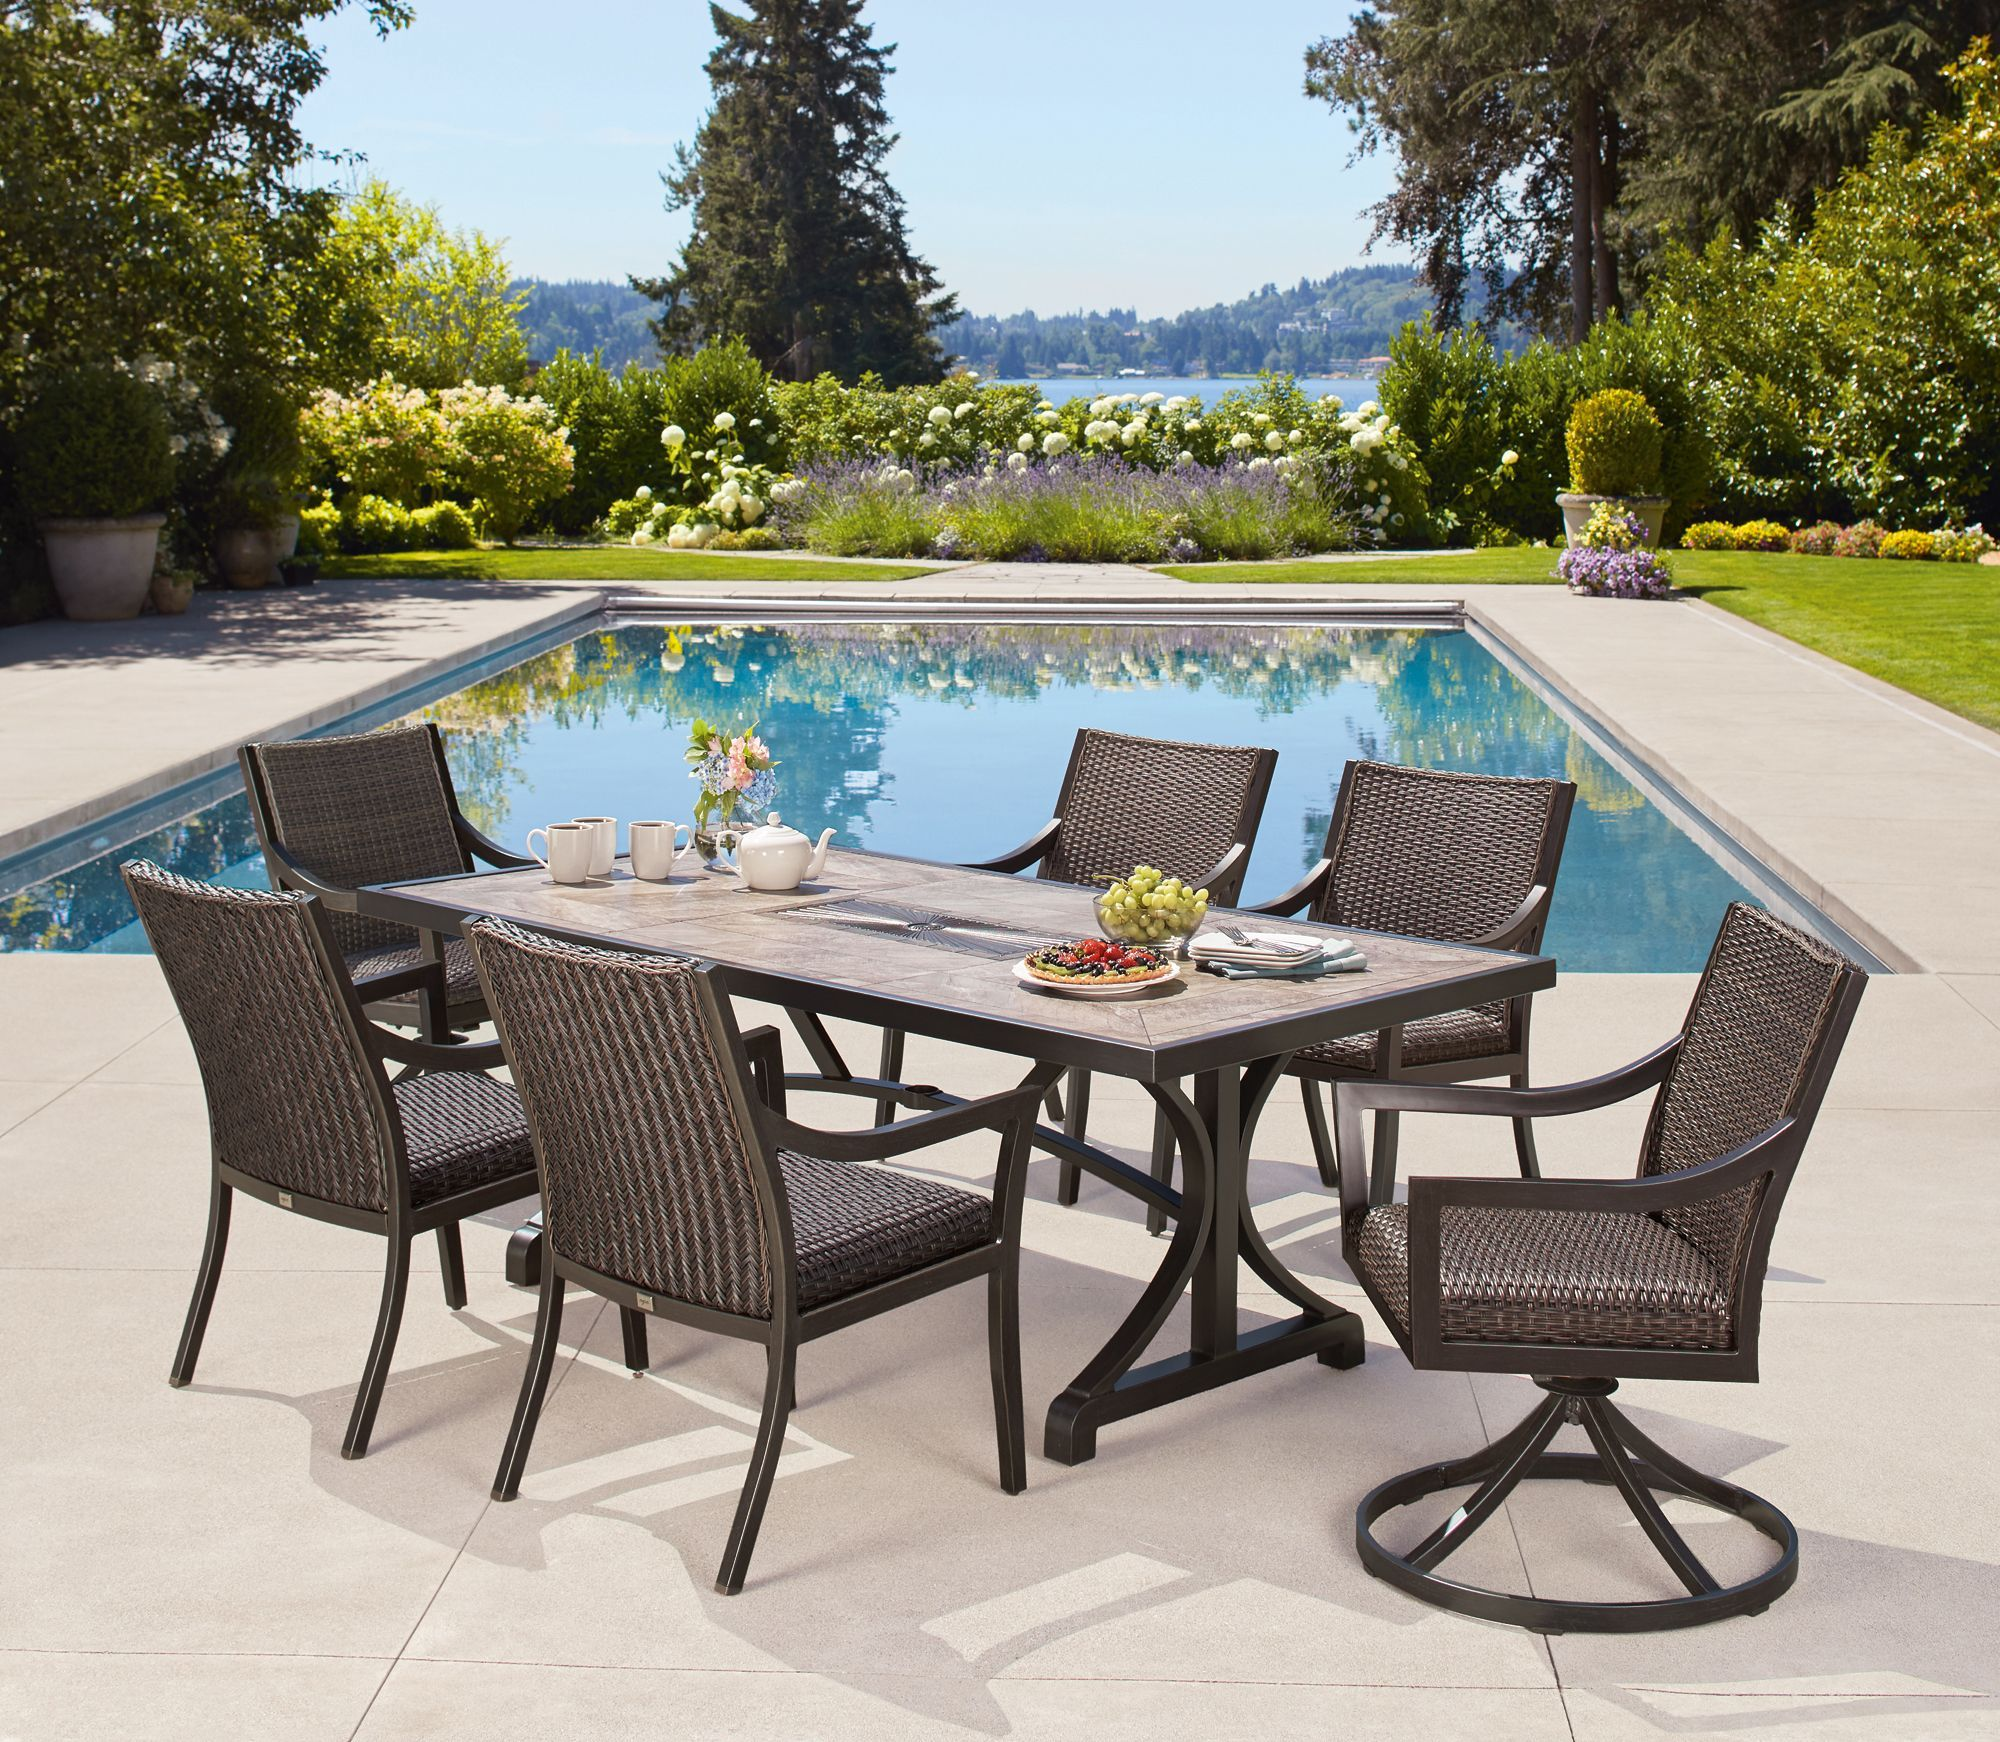 South Dakota 7piece Woven Dining Set Patio furniture